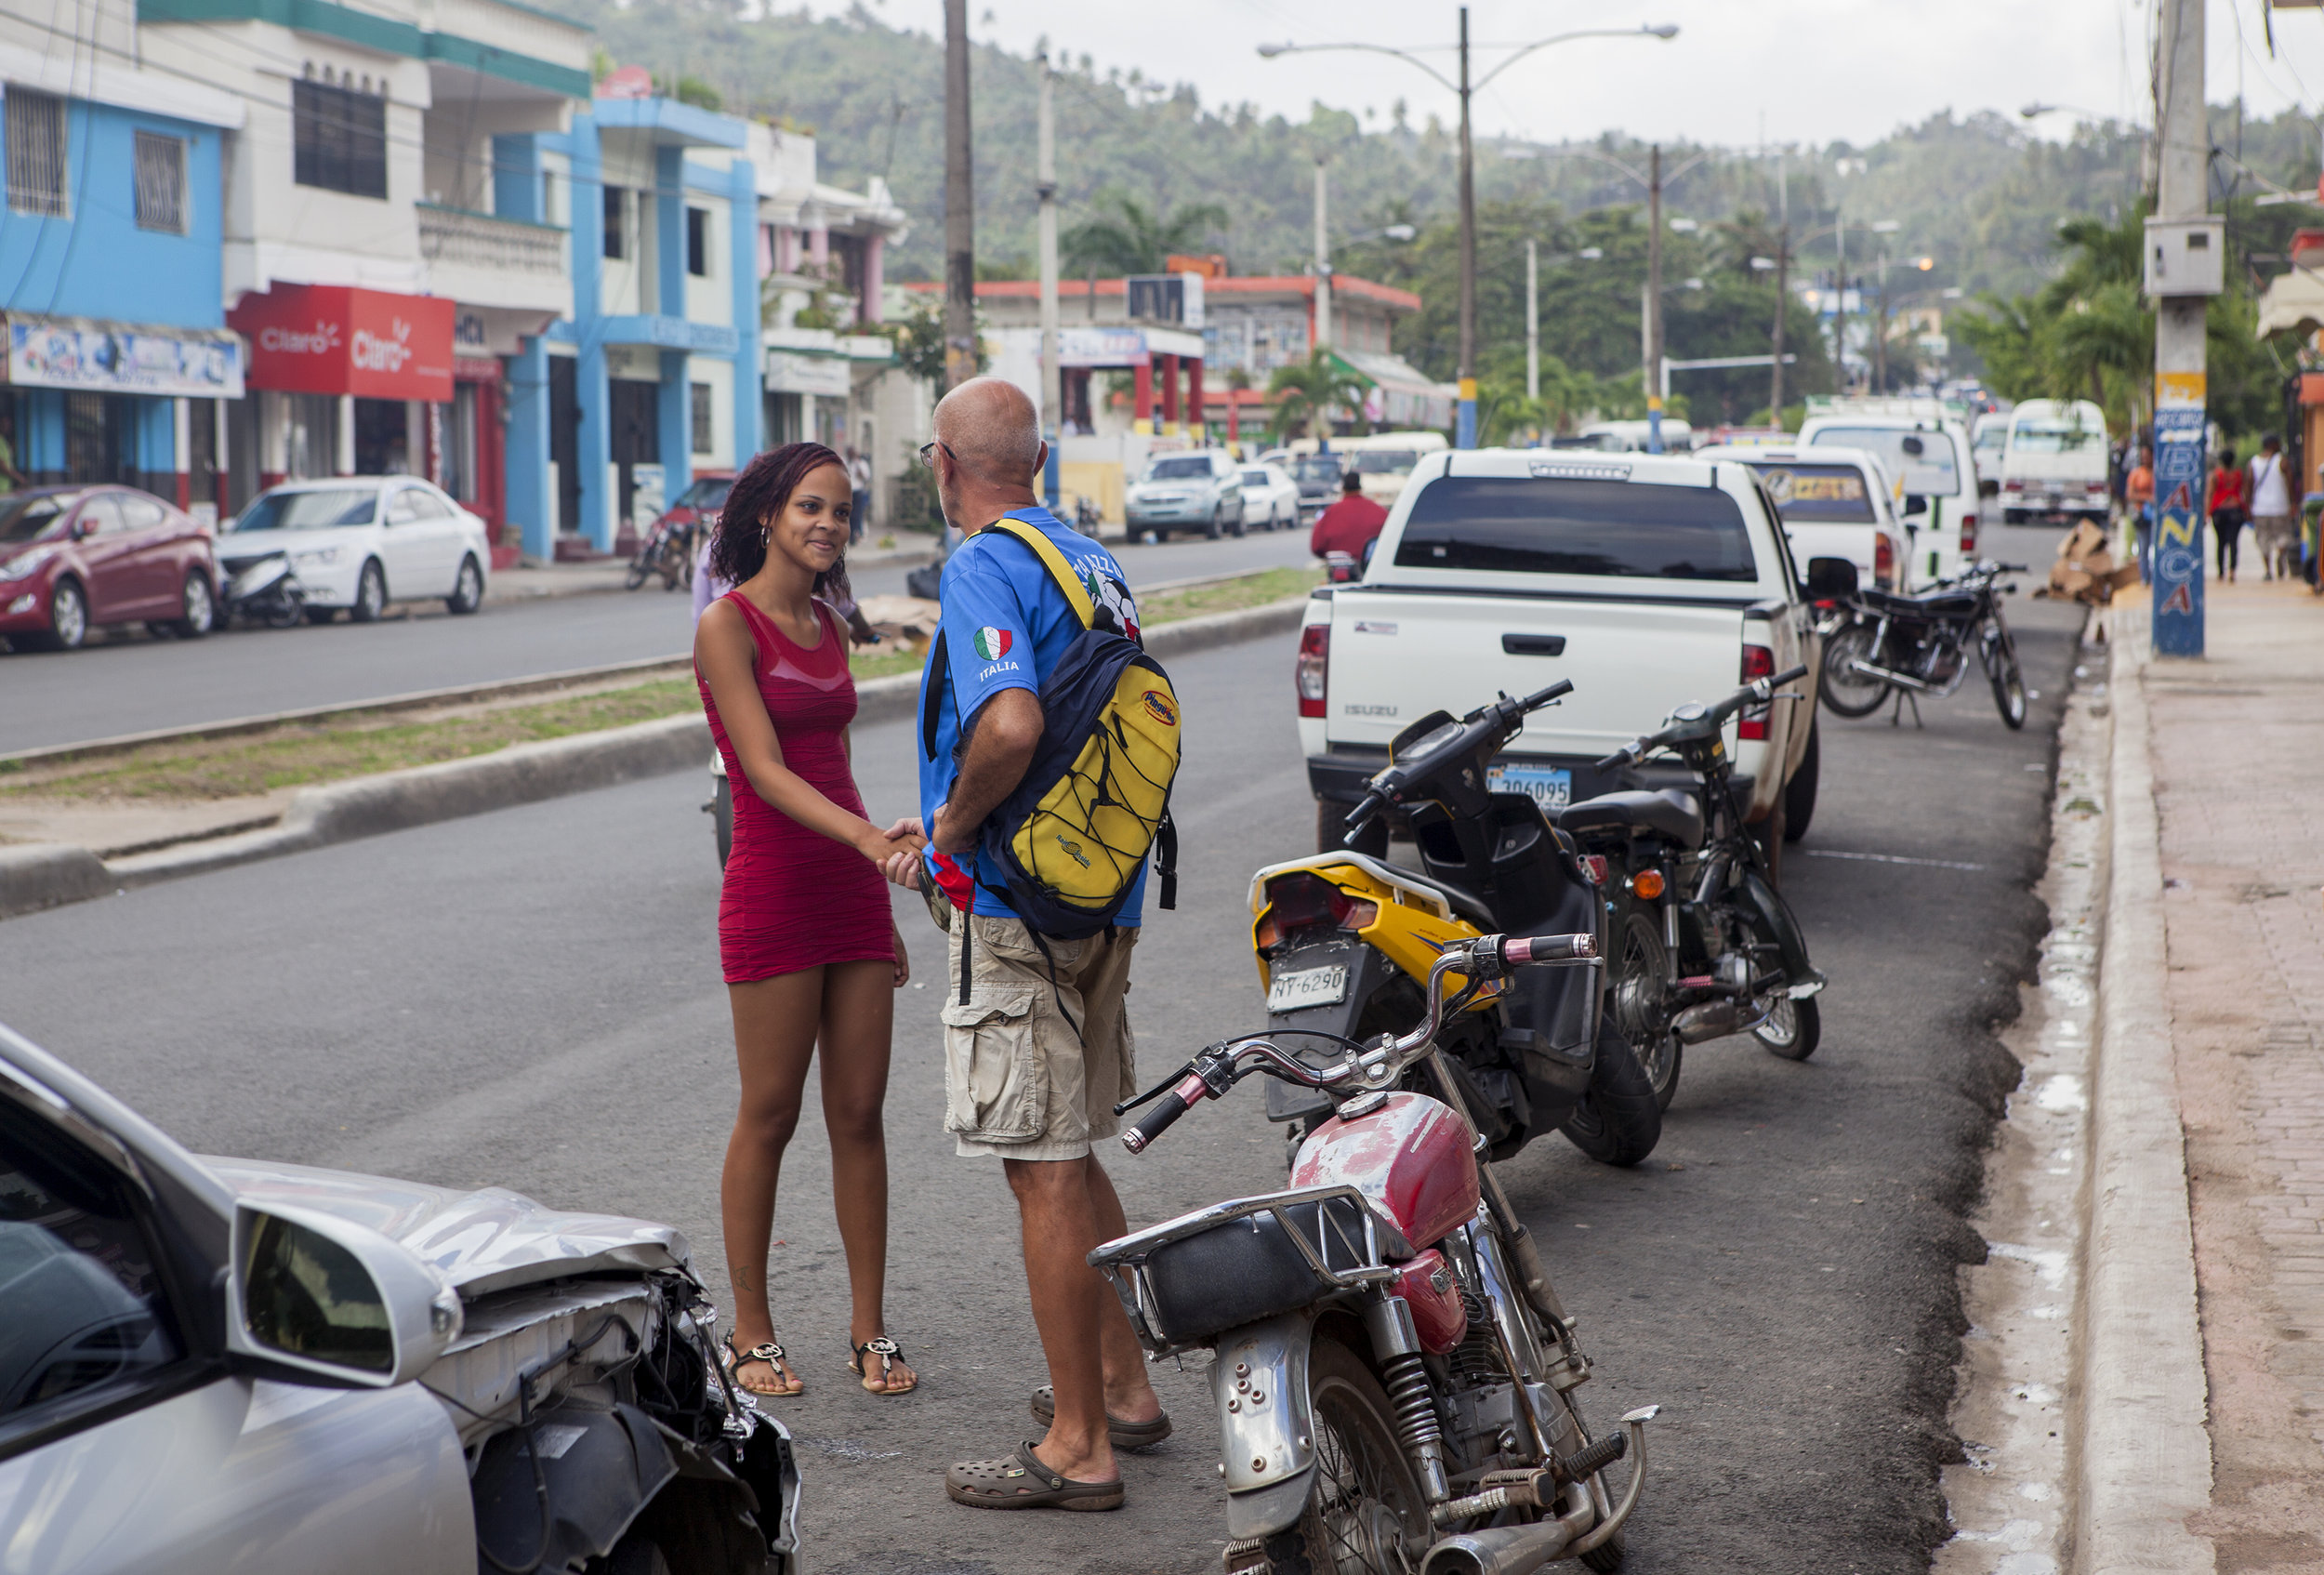 An Italian tourist greets a sex worker on the street in Samaná. Although Samaná isn't the most well-known sex tourism town in the Dominican Republic, Berenise, Yoleidi and Chabeli are just a few of the many sex workers in town.